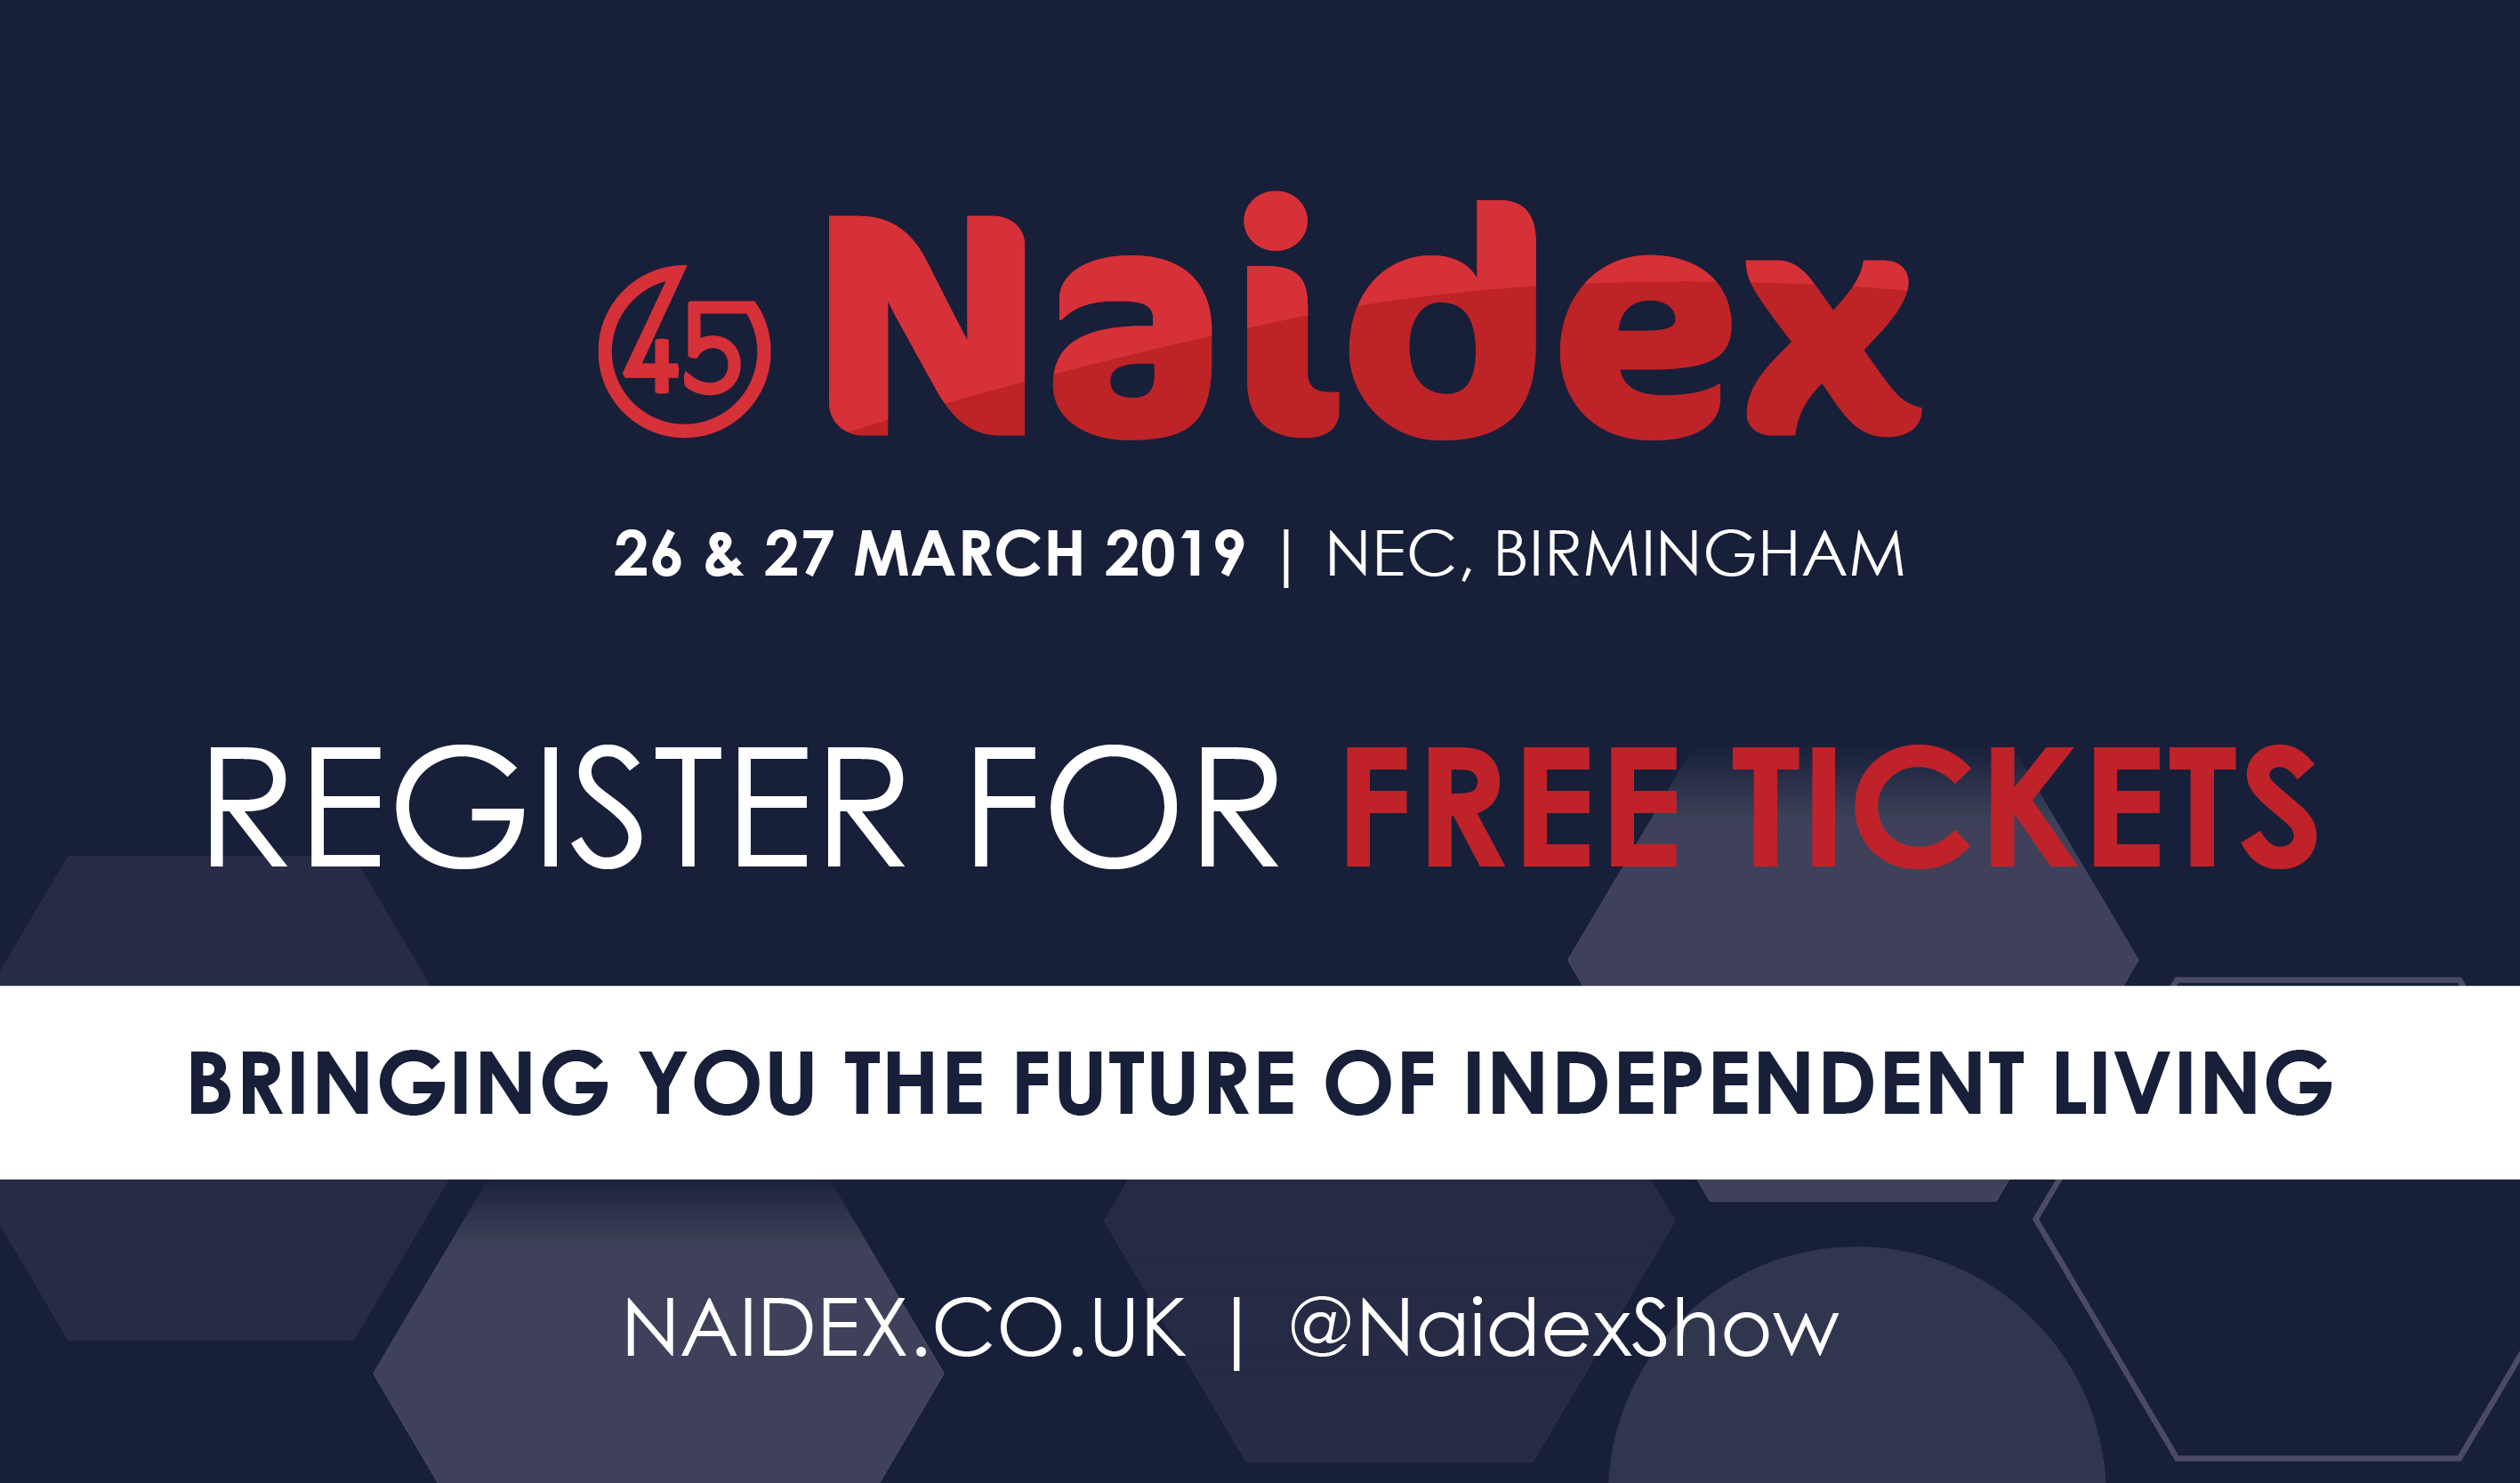 Naidex 45, 26th and 27th March 2019 at the NEC Birmingham. Register for your free tickets link